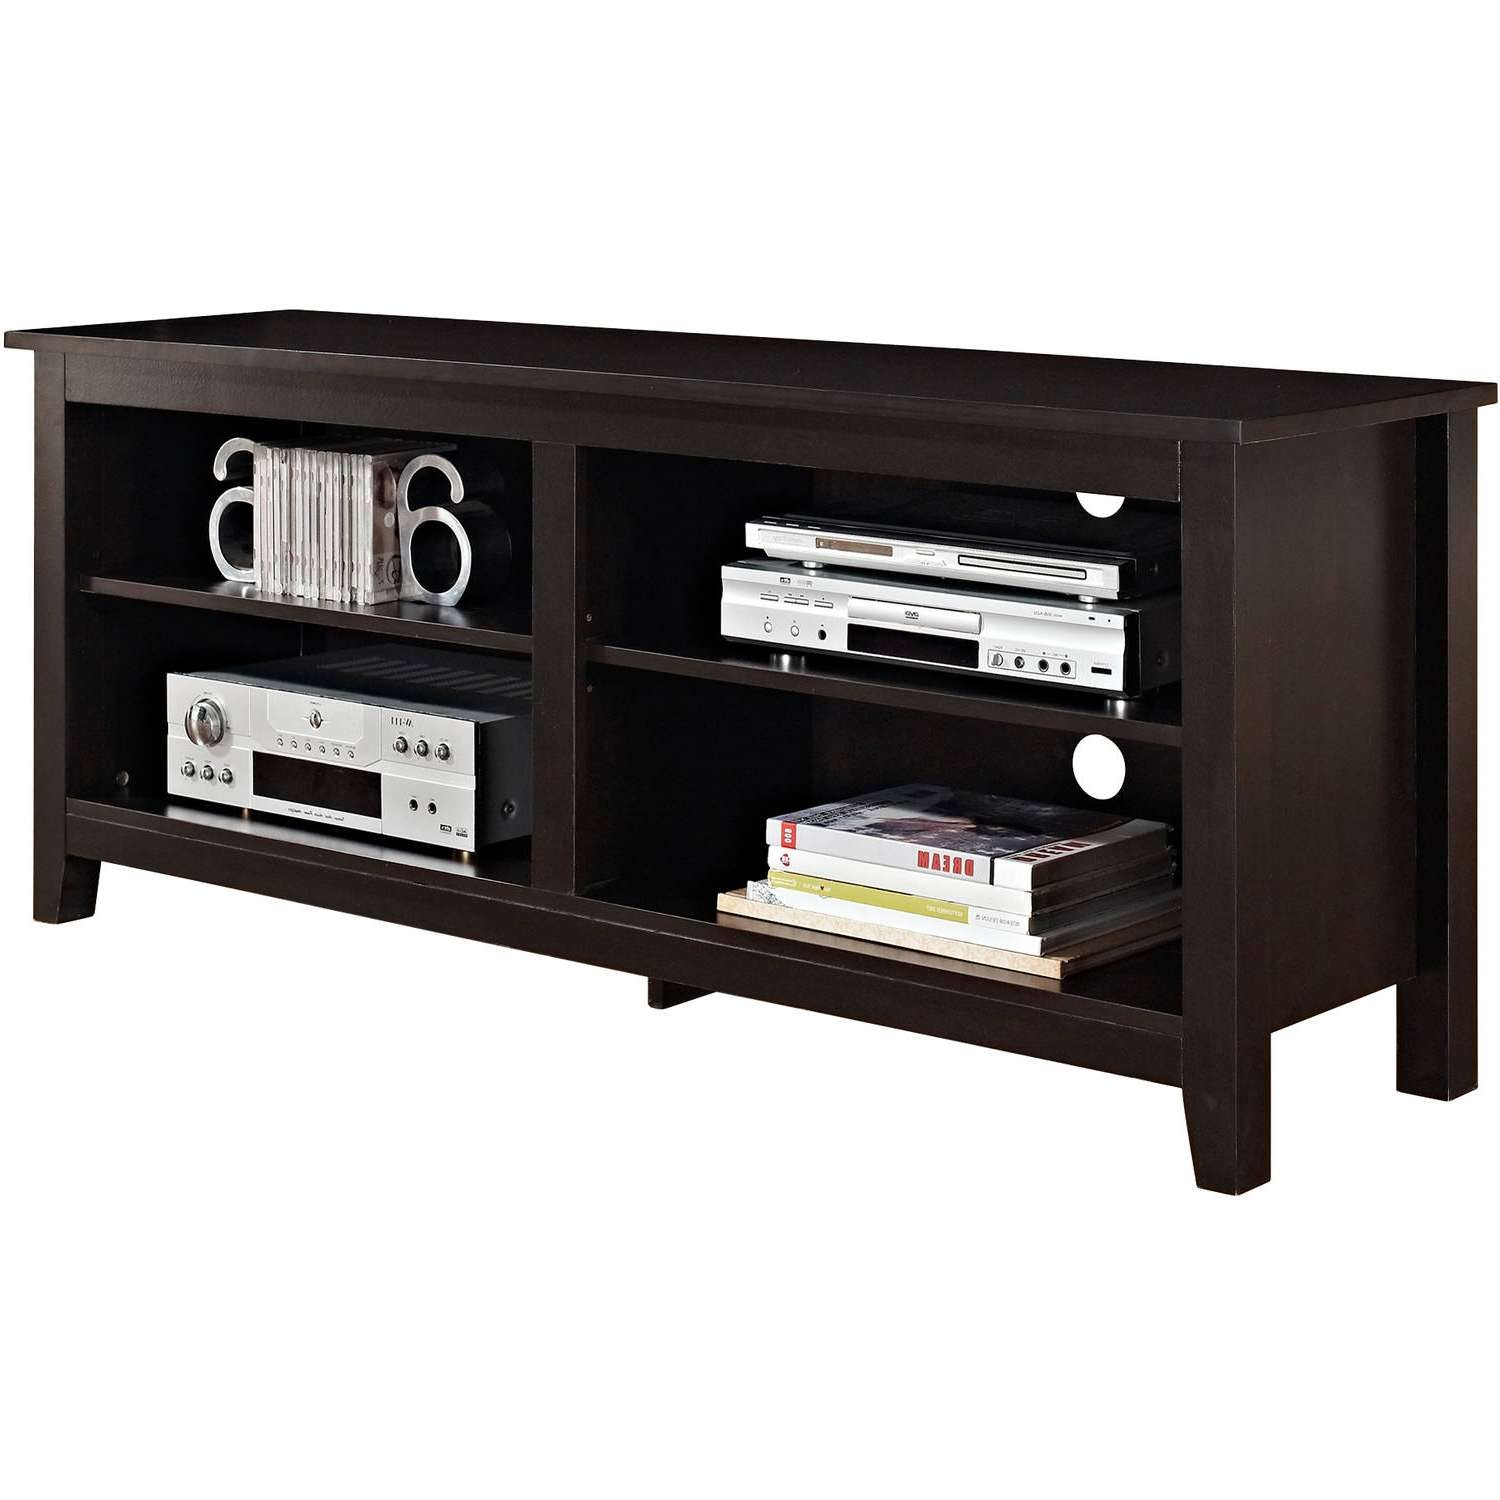 "Wood Tv Stand For Tvs Up To 60"", Espresso – Walmart Regarding Wood Tv Stands (View 15 of 15)"